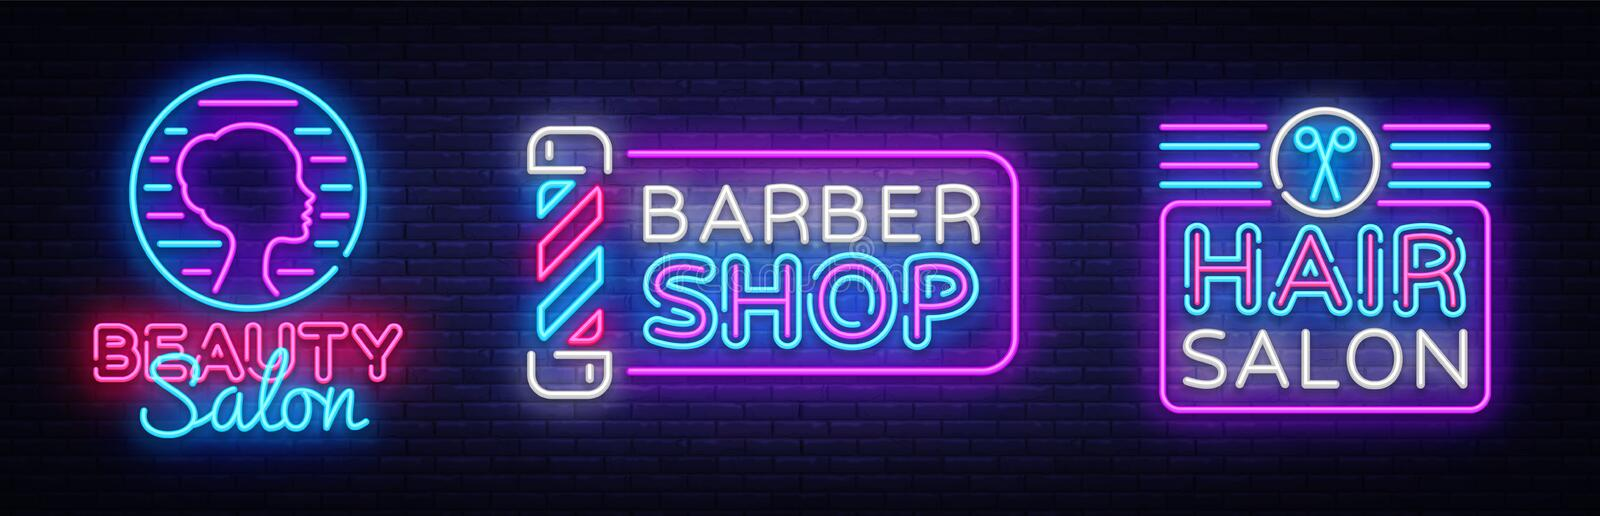 Hair salon logo collection vector. Beauty Salon neon sign, Barber Shop modern trend design, light vector illustration. Light banner, Vintage sign. Vector vector illustration